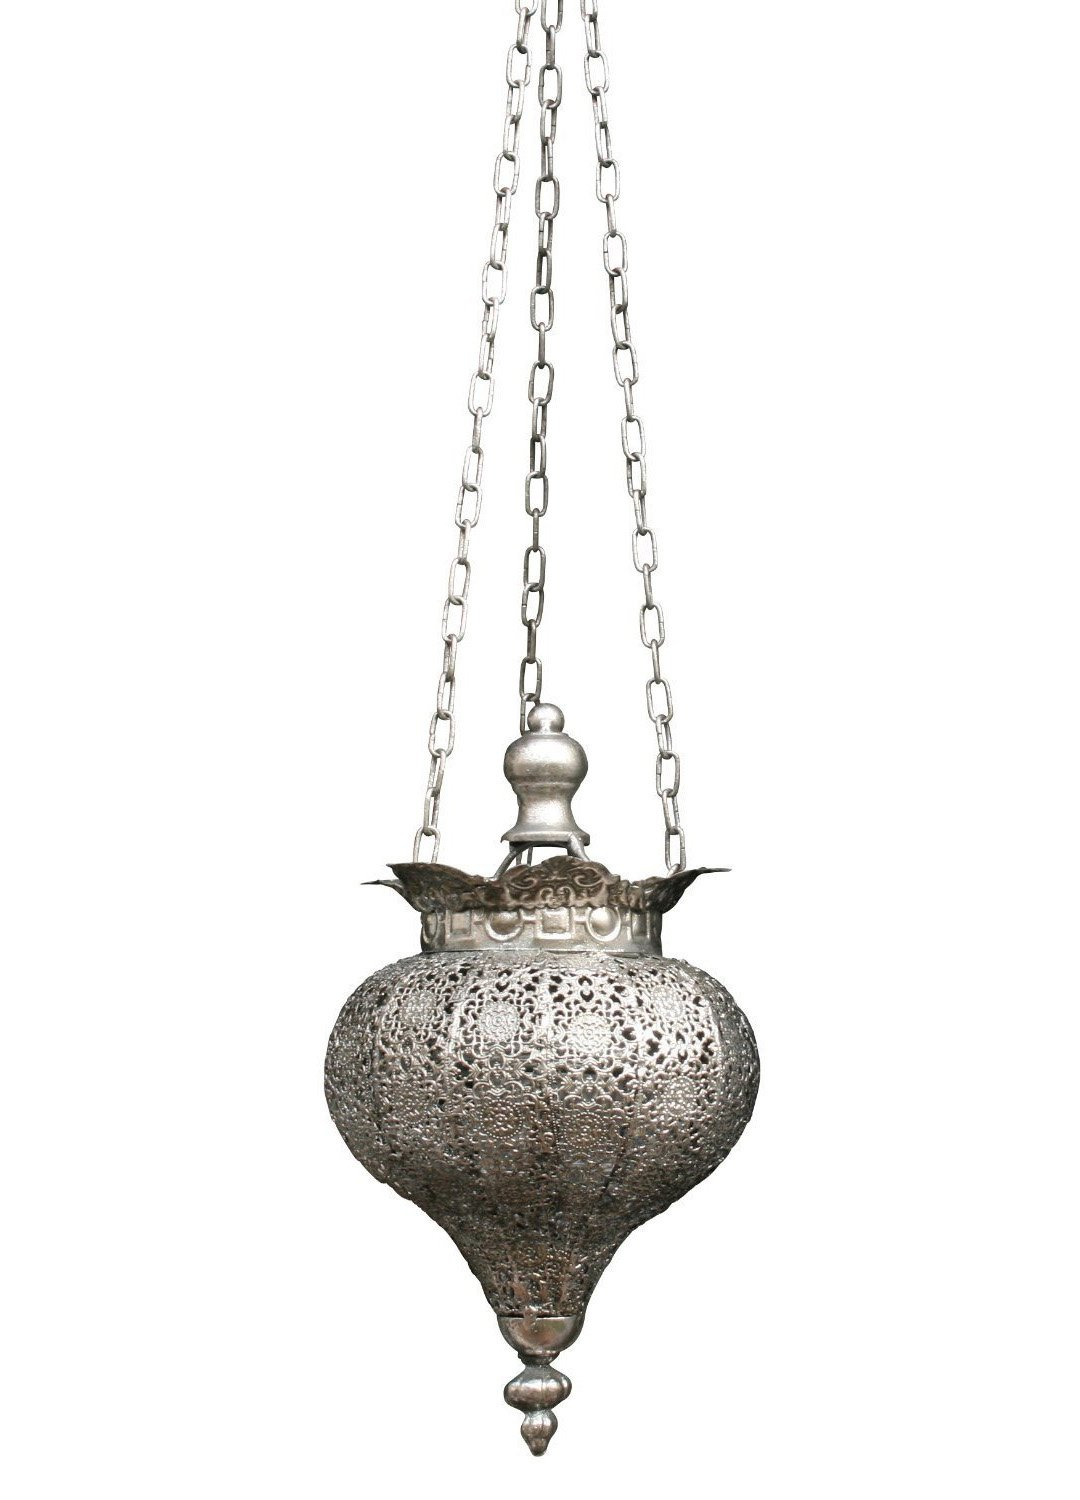 PierSurplus Antique Silver Oriental Metal Hanging Pendant Light Candle Lantern - Small Product SKU: CL221834